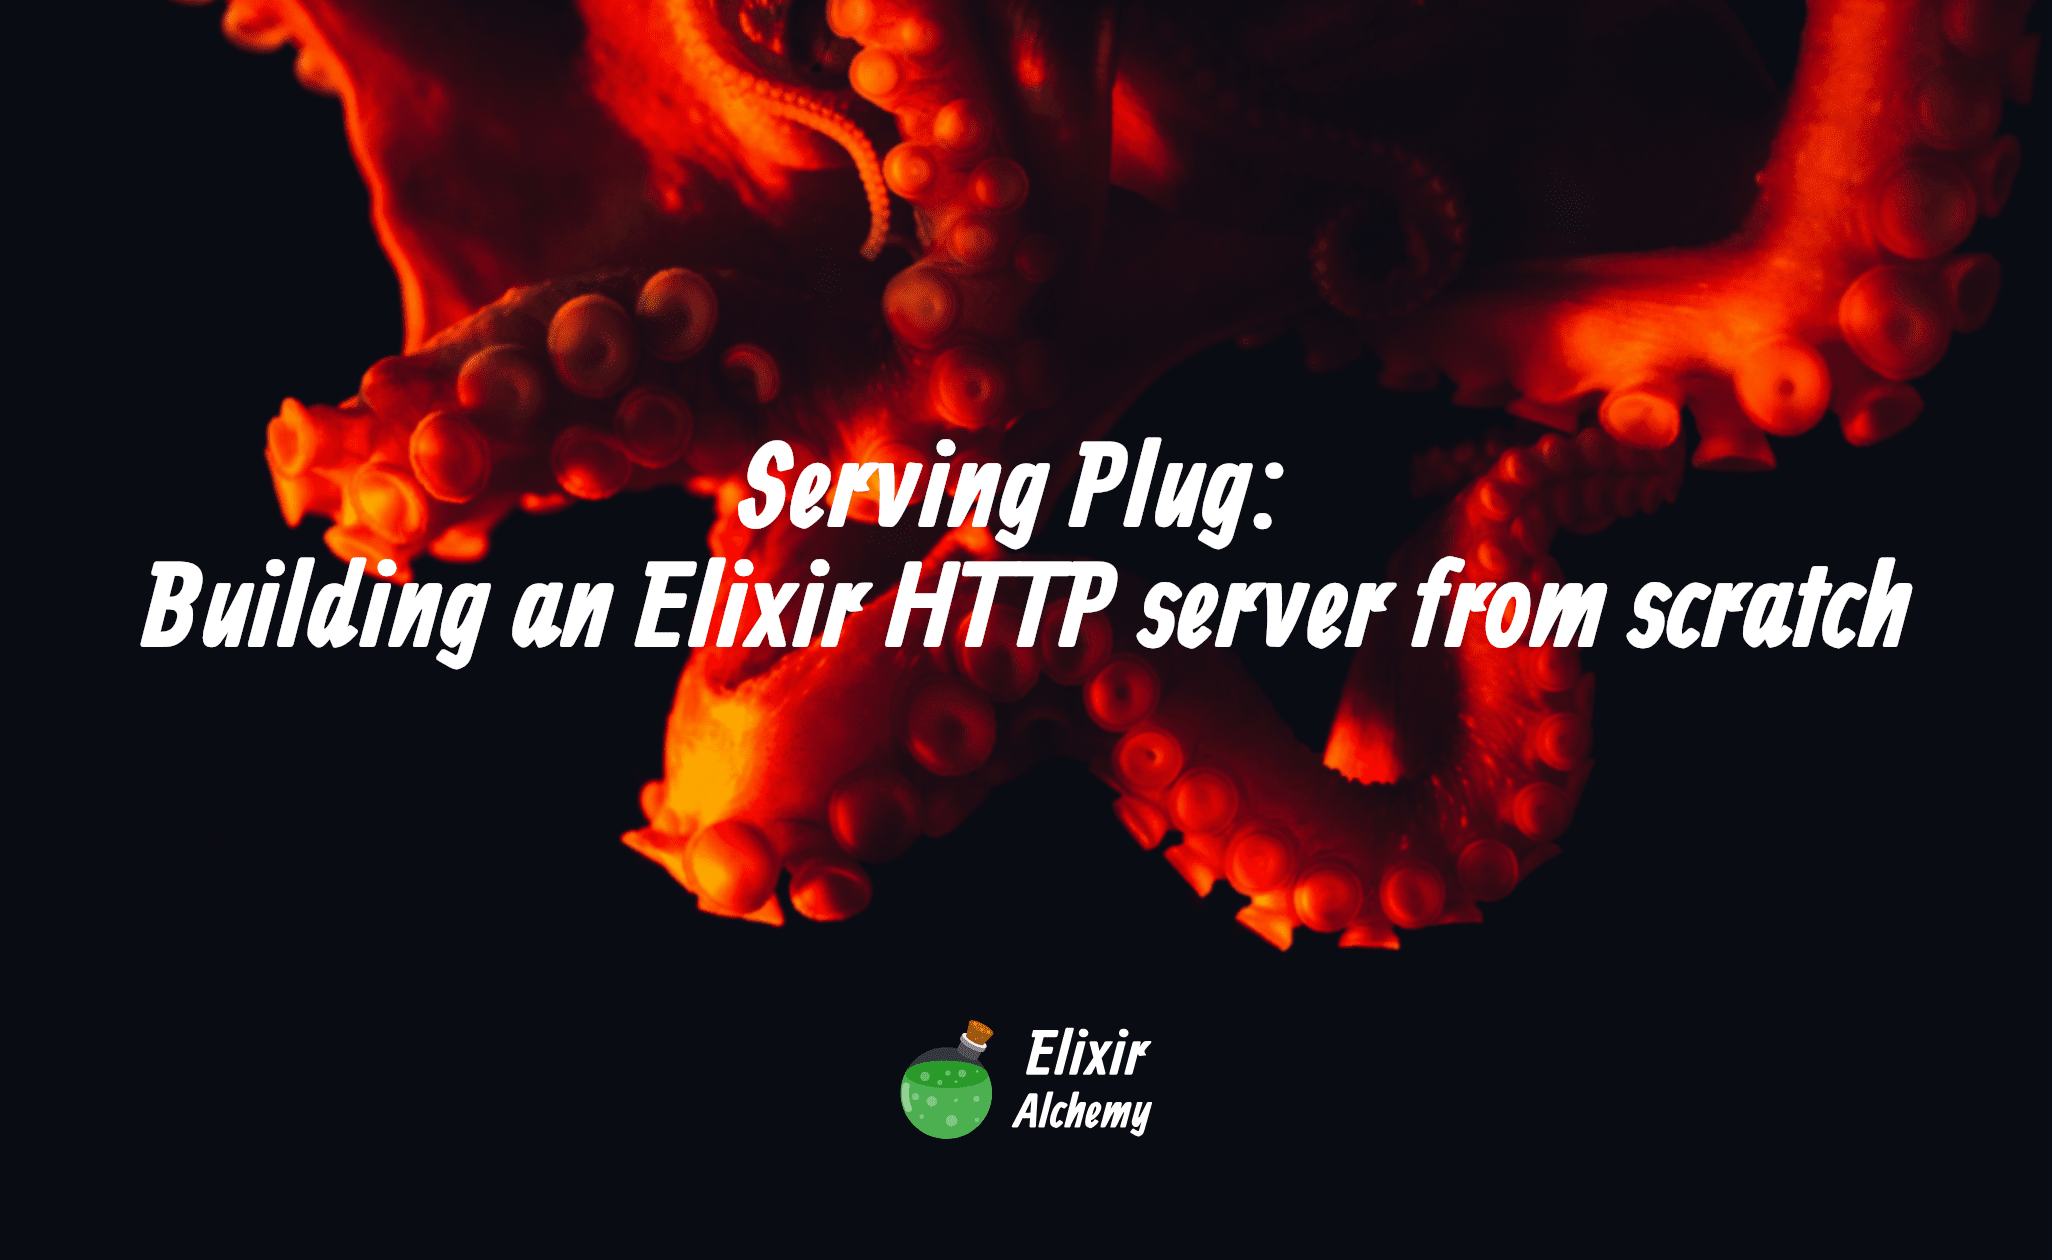 Serving Plug: Building an Elixir HTTP server from scratch